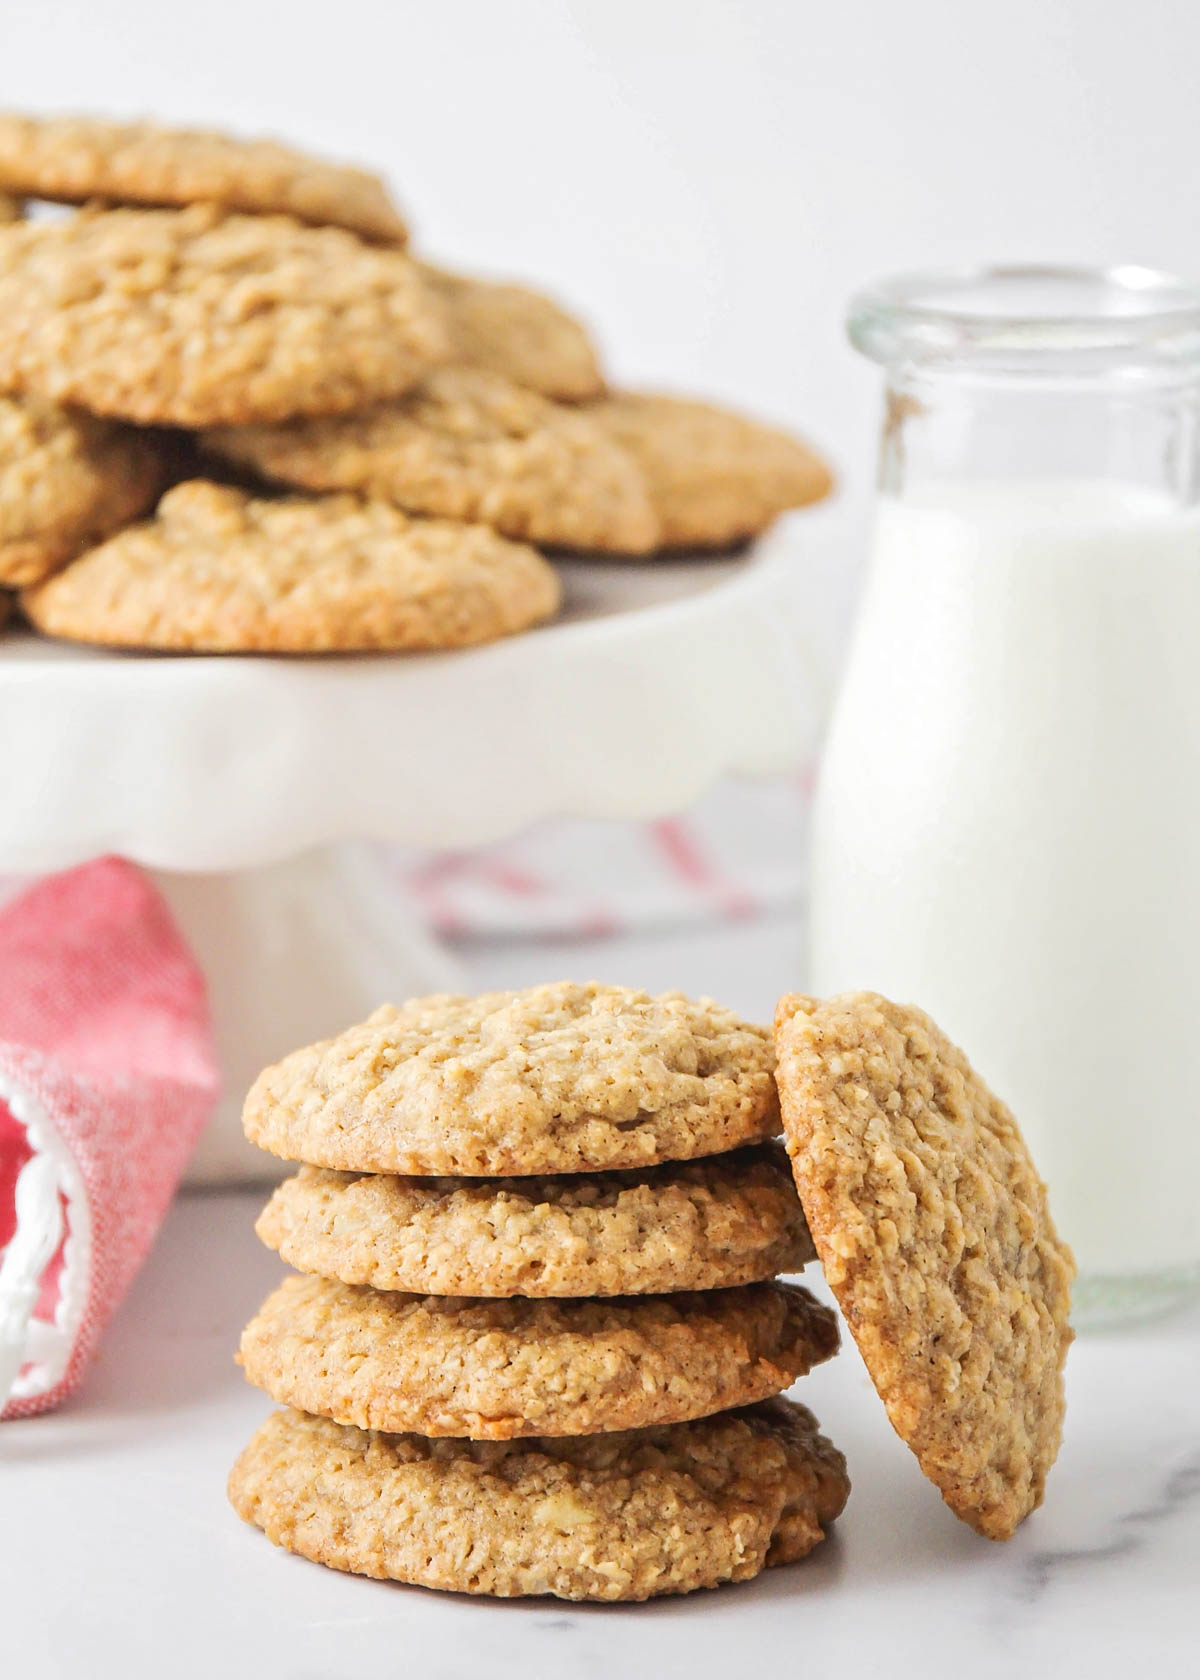 A stack of homemade oatmeal cookies